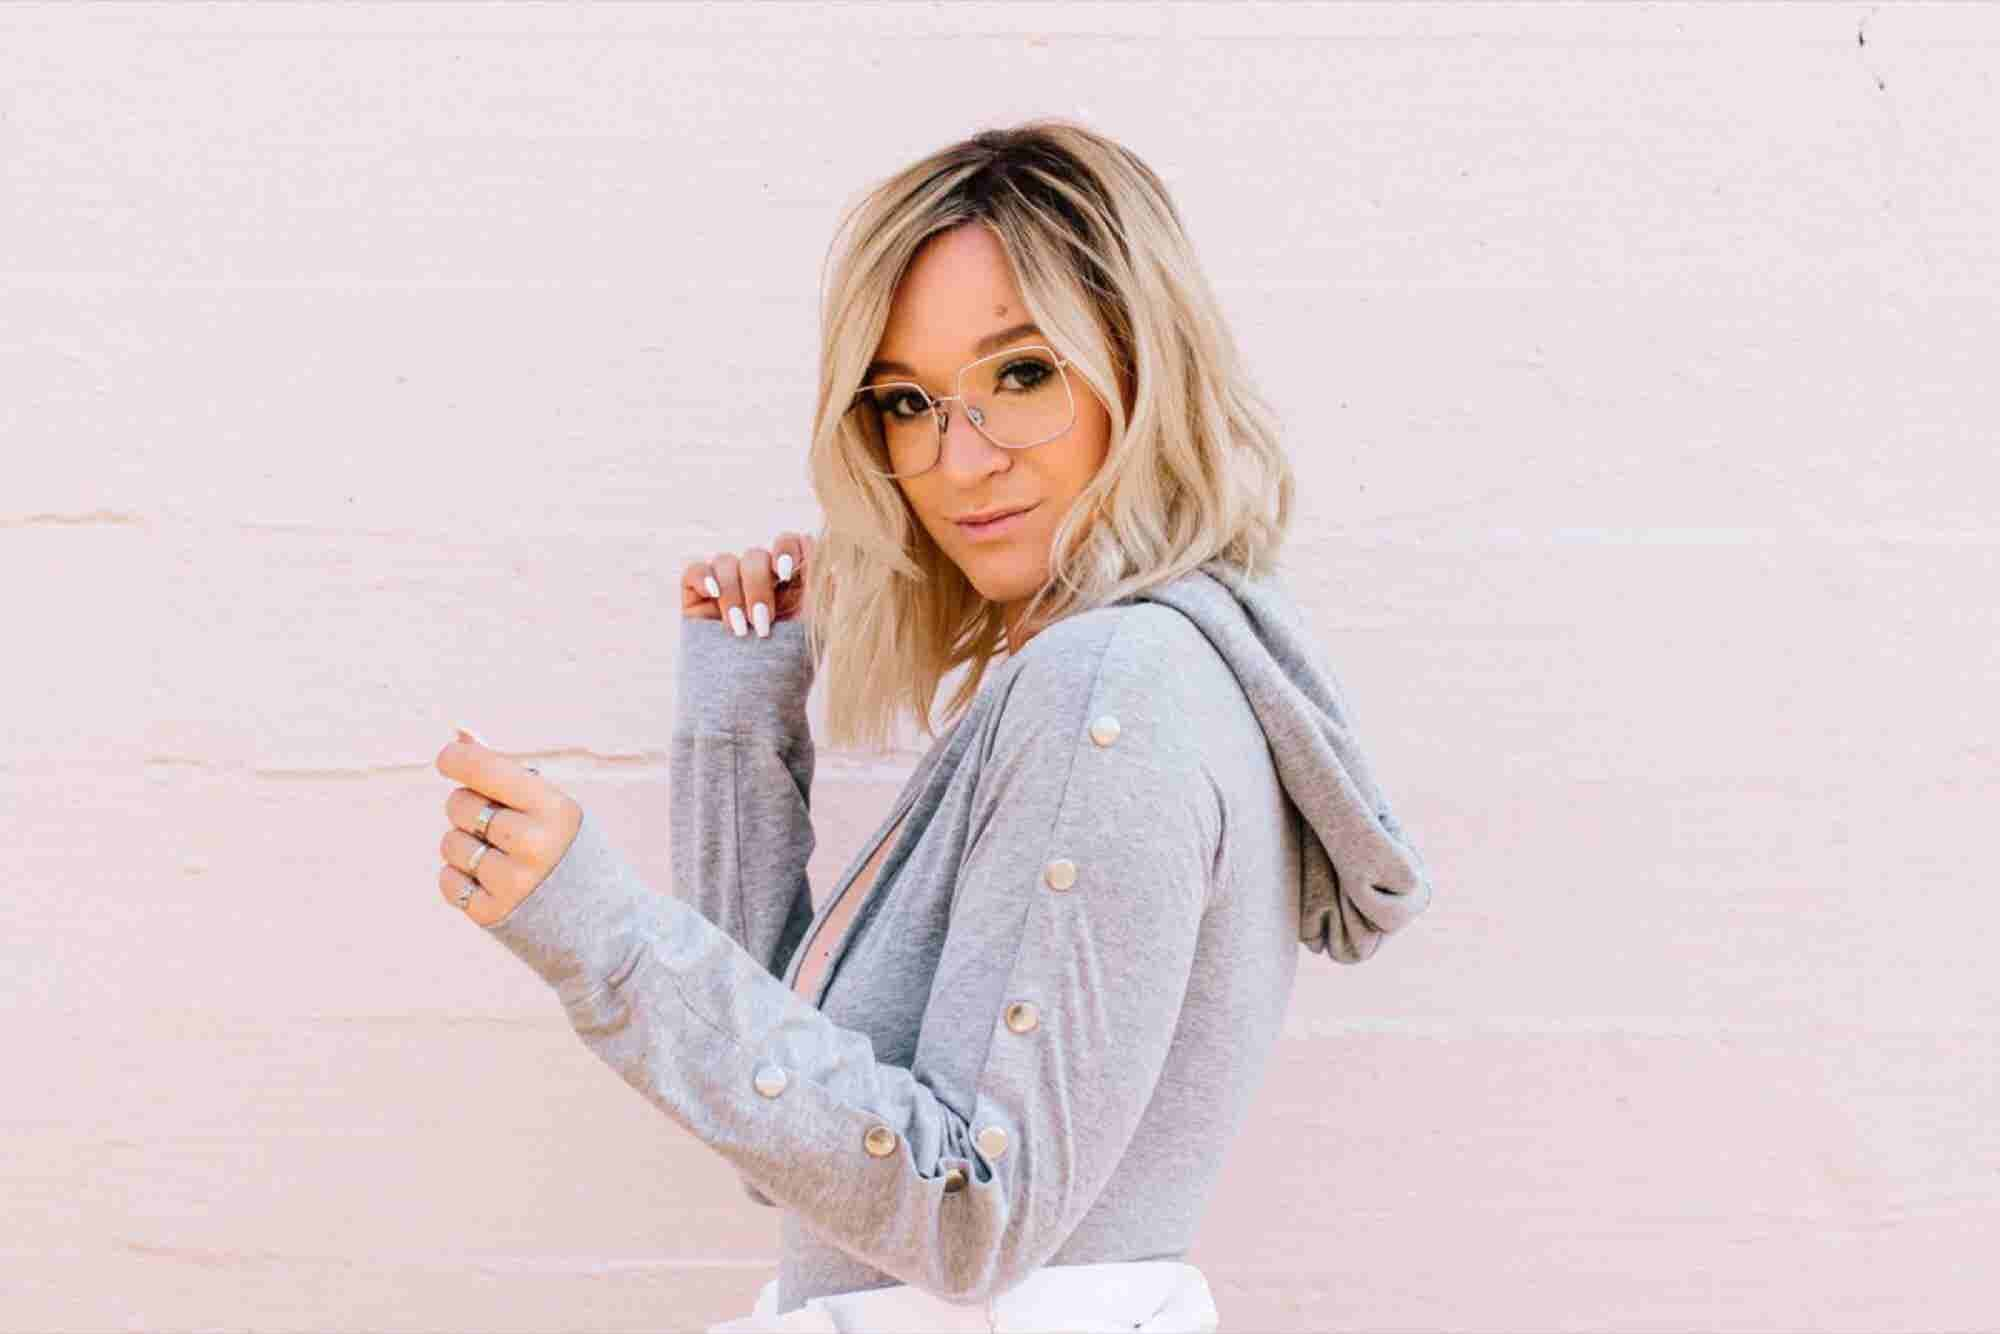 What This YouTube Star With 7.3 Million Subscribers Is Doing to Deal With Burnout